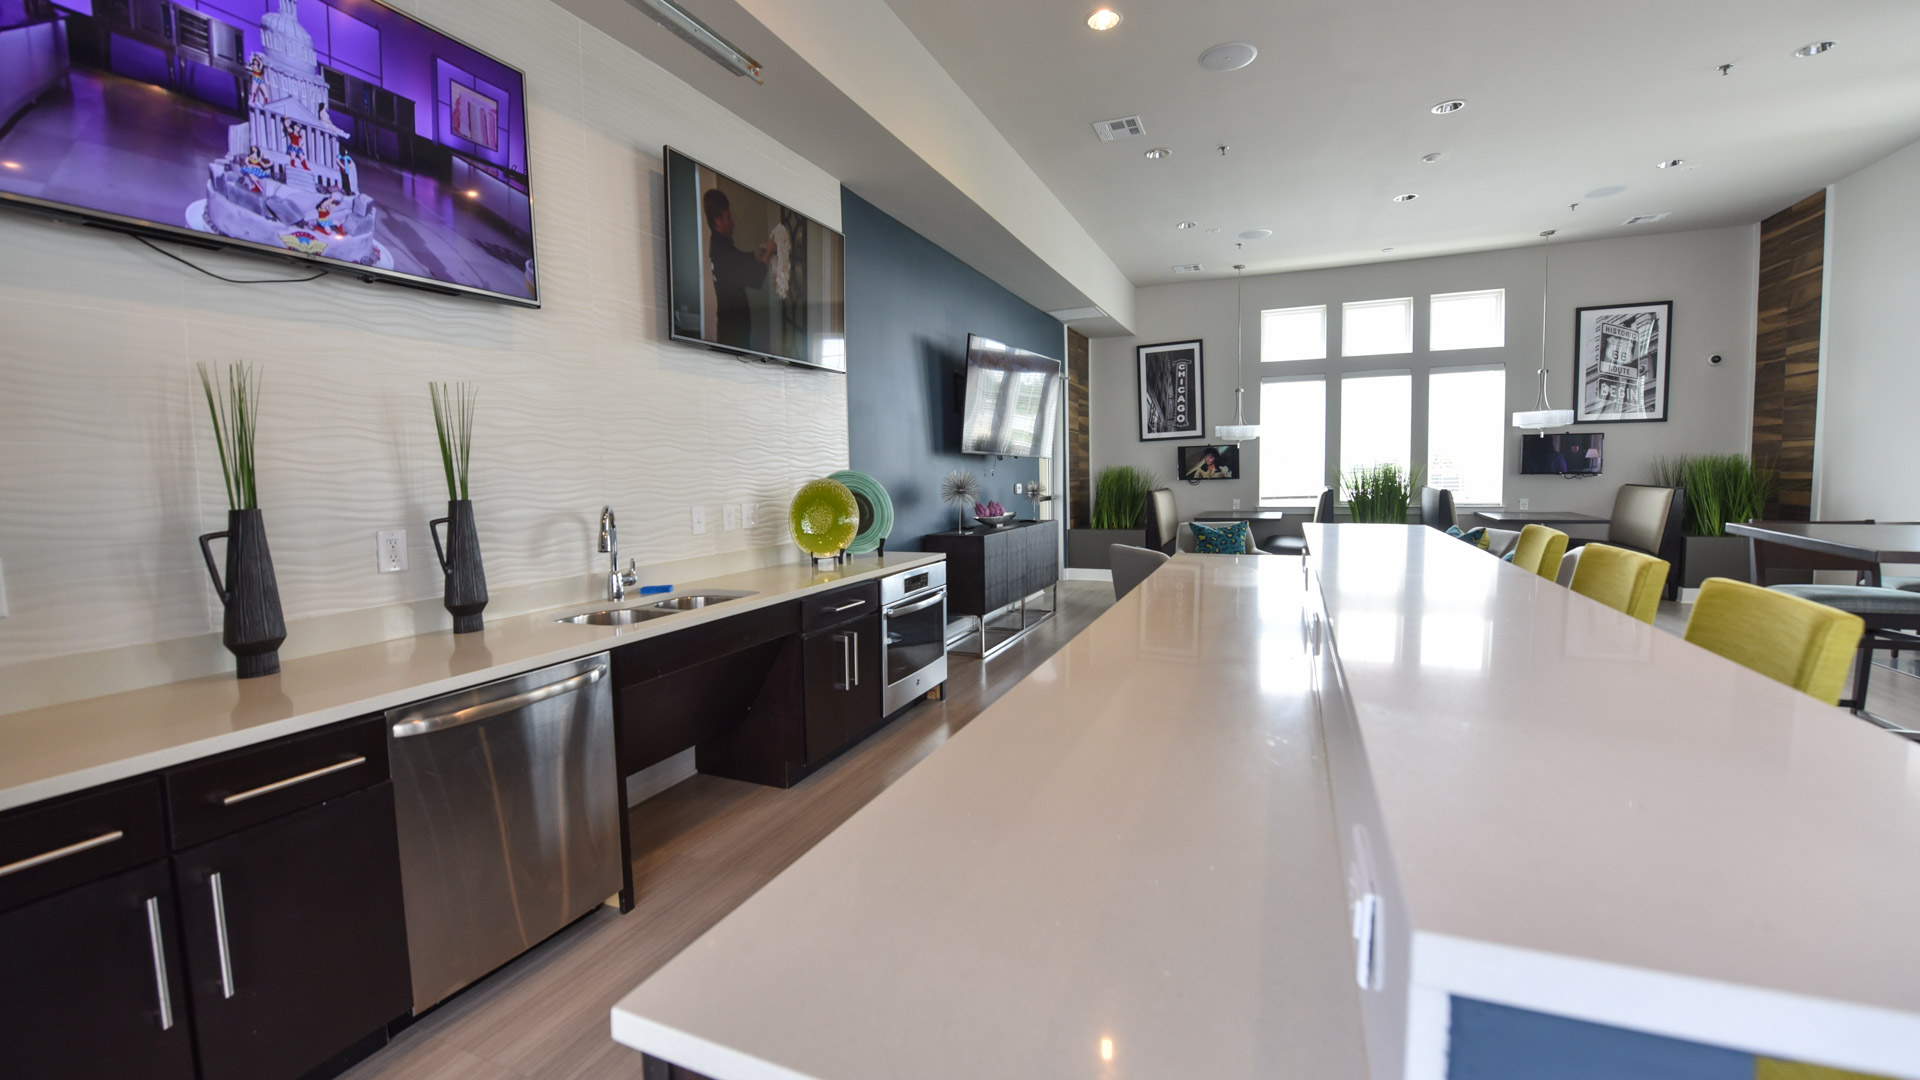 Modern Kitchenette at Springs at Orchard Road in North Aurora, IL-6